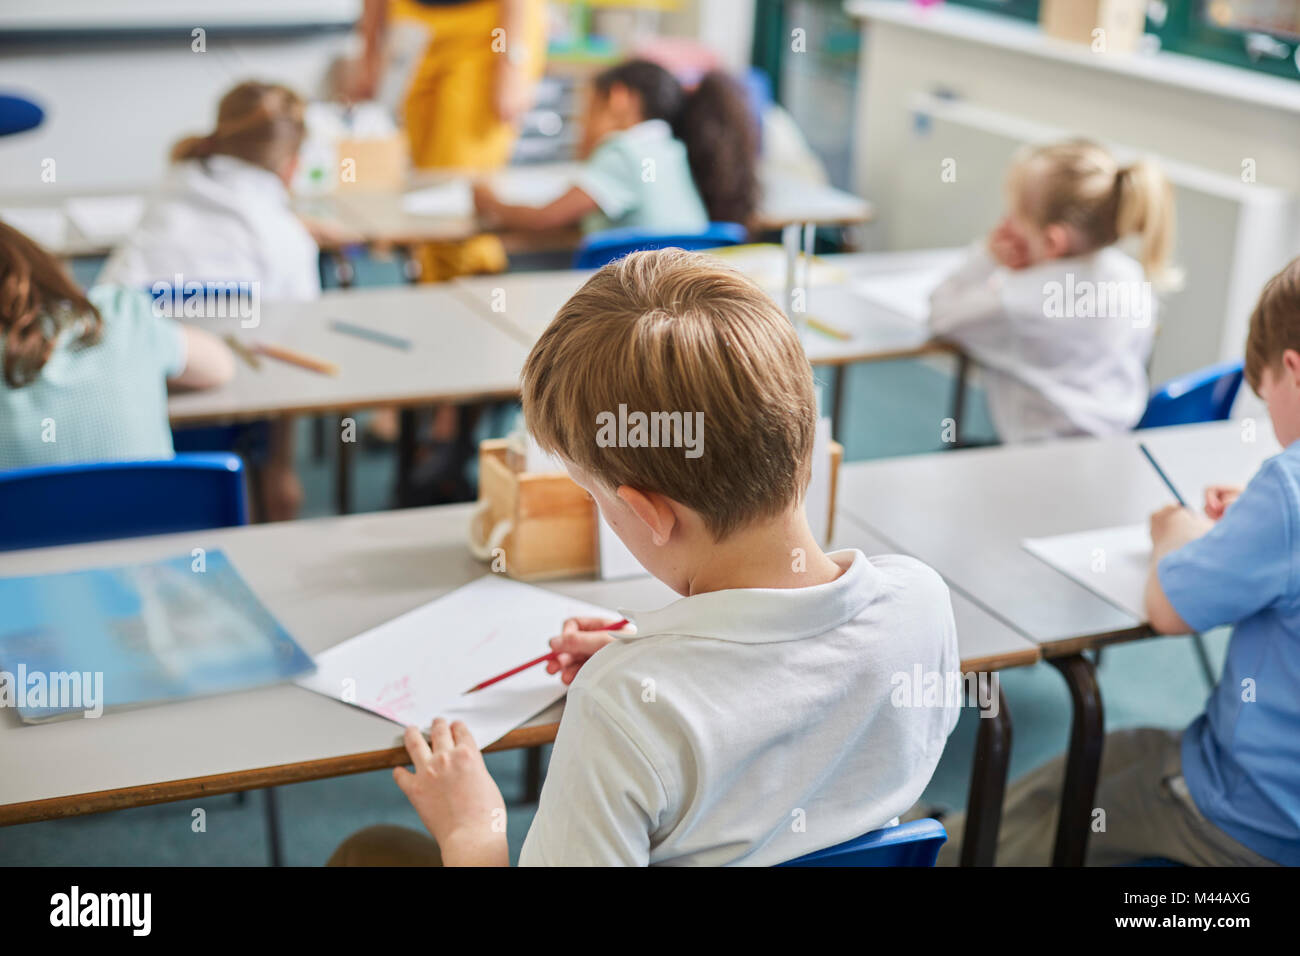 Primary schoolboy and girls doing schoolwork at classroom desks, rear view - Stock Image